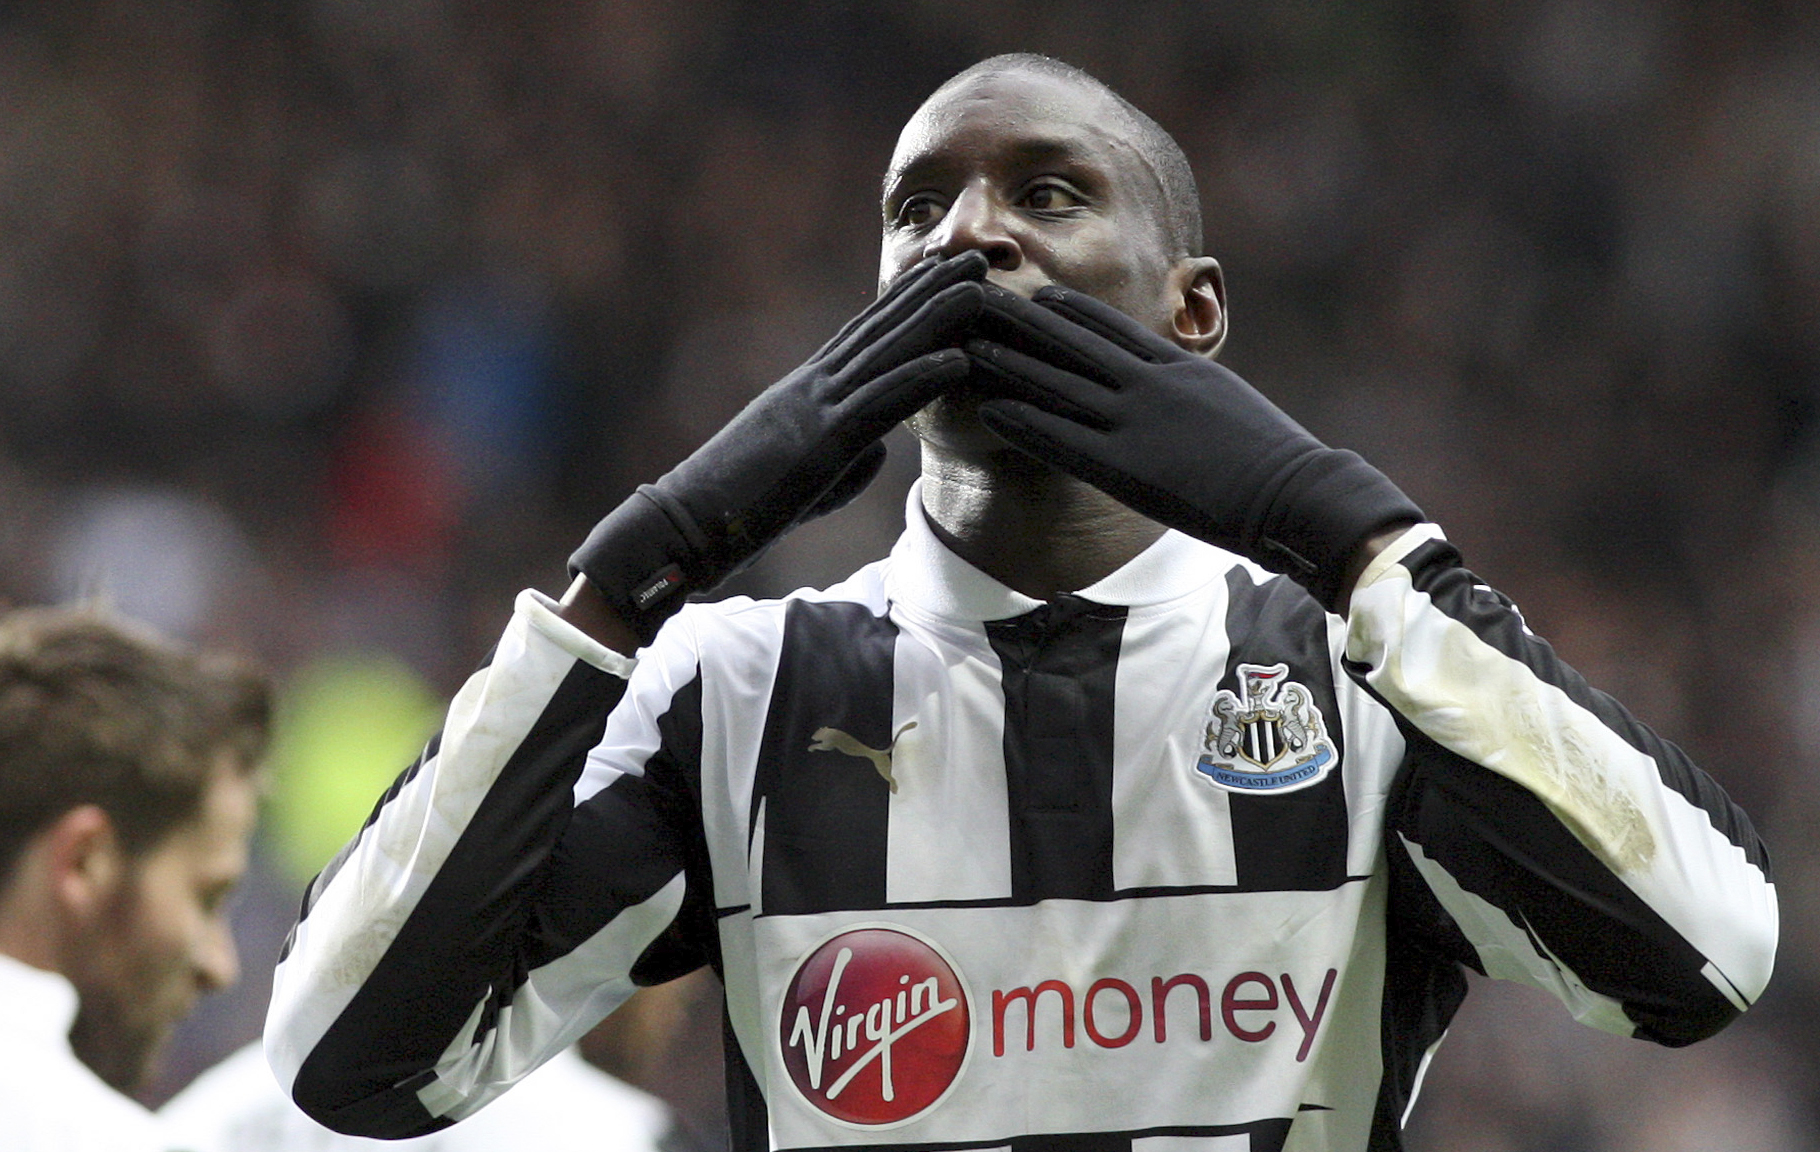 Goodbye: Demba Ba has signed for Chelsea (Picture: AP)